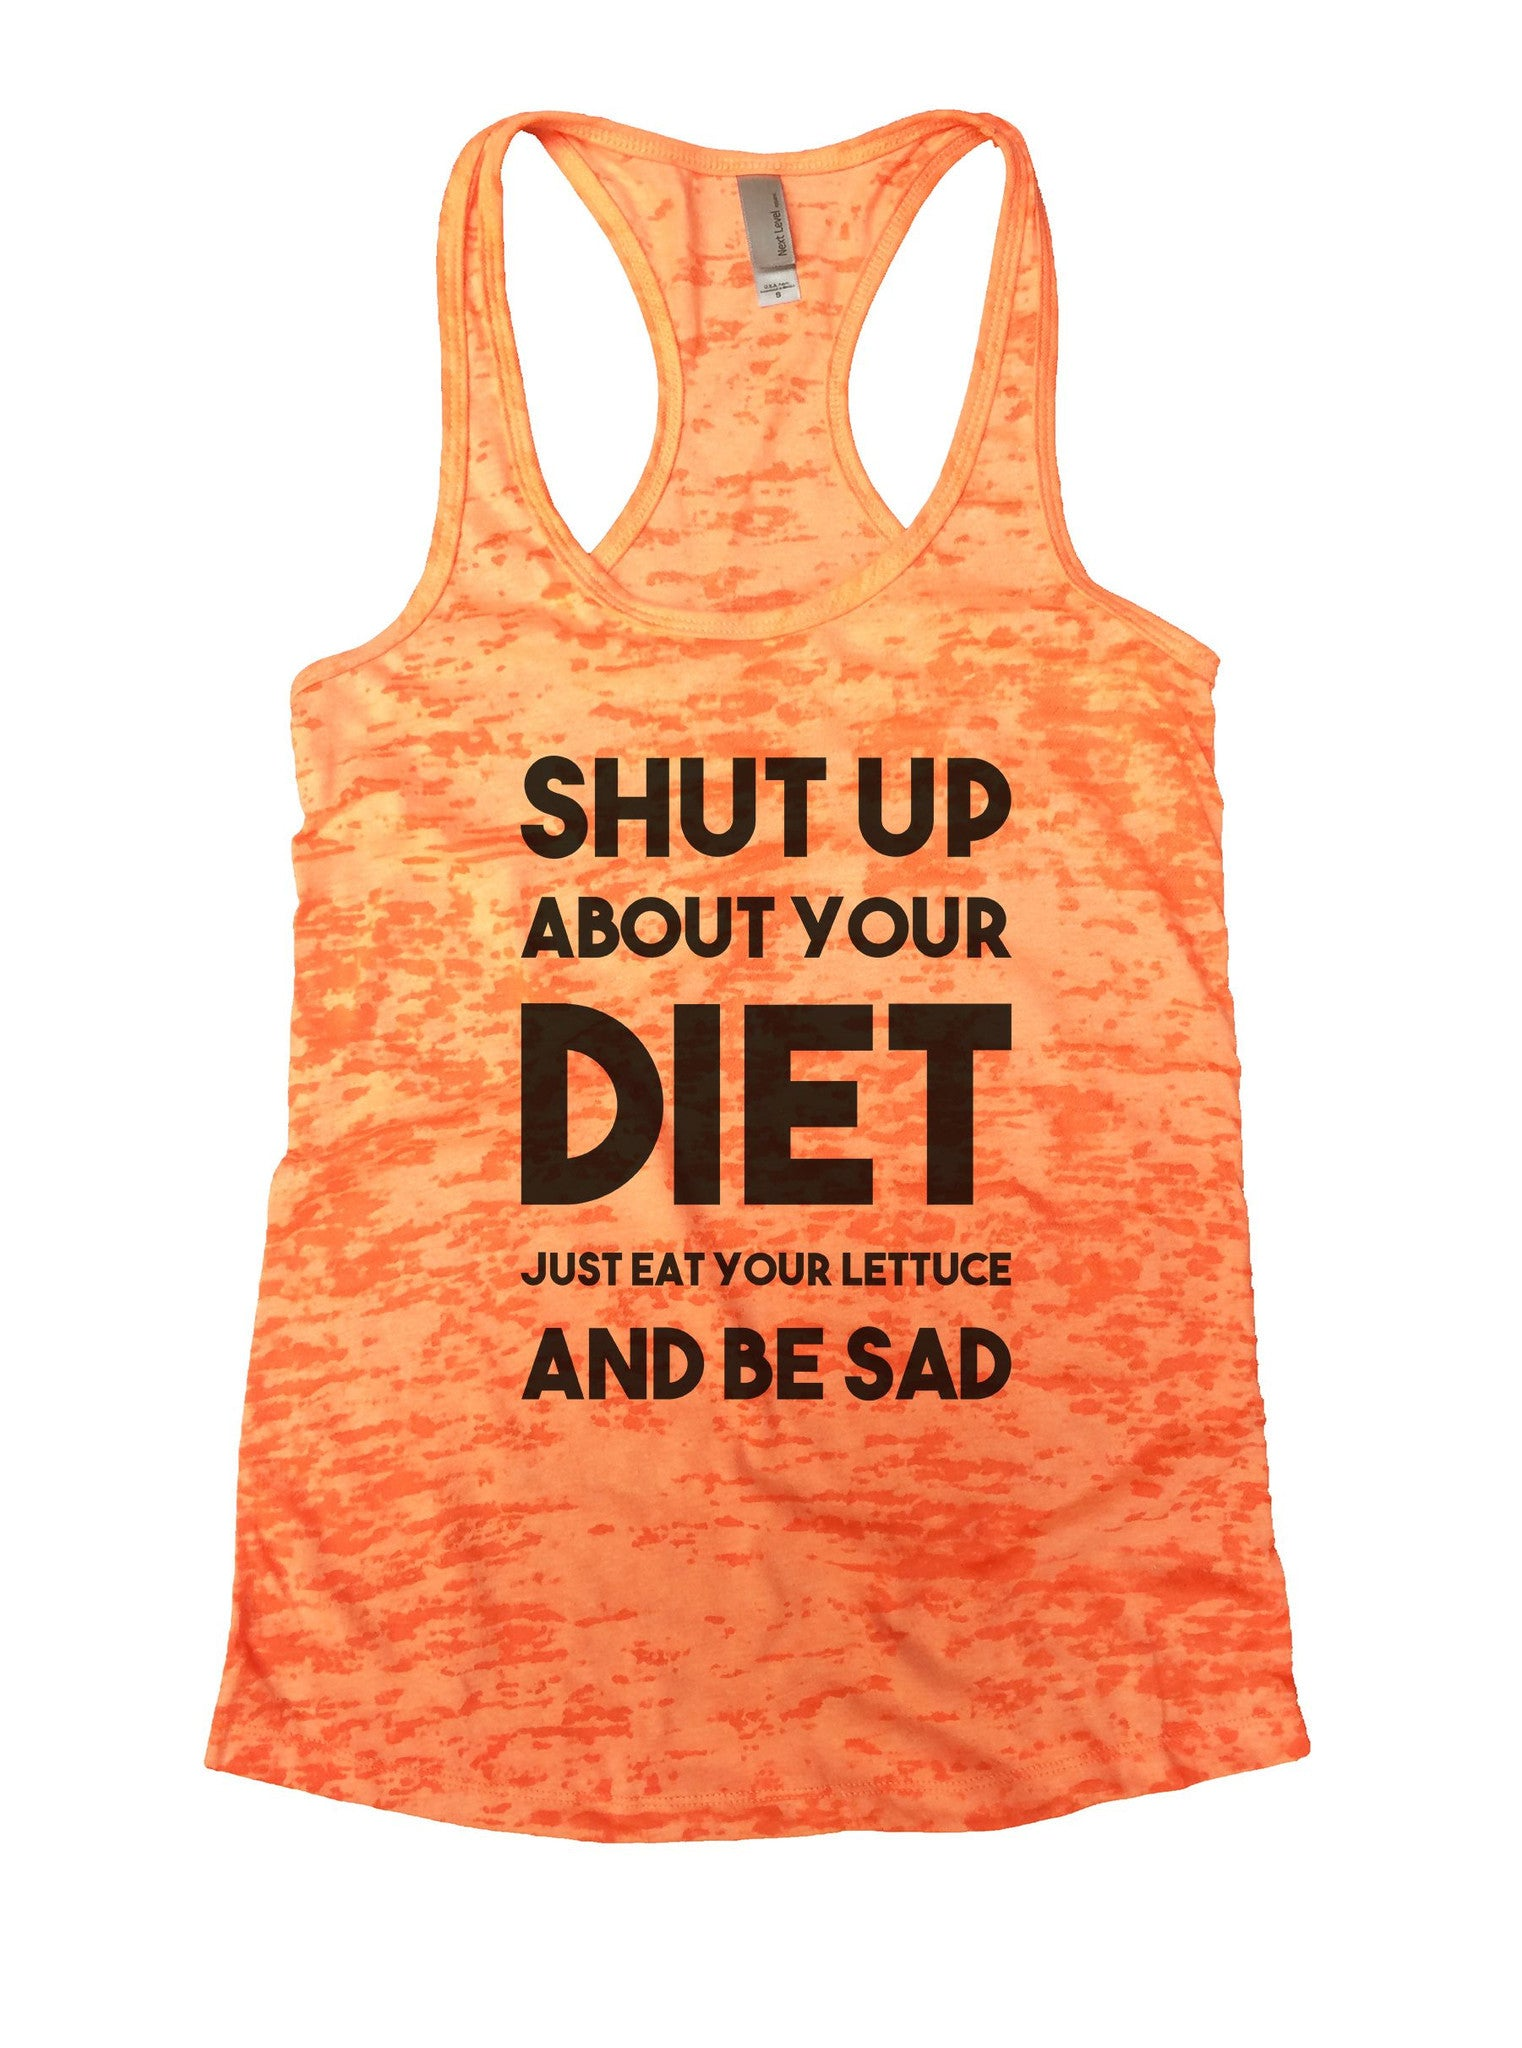 Shut Up About Your Diet Just Eat Your Lettuce And Be Sad Burnout Tank Top By BurnoutTankTops.com - 856 - Funny Shirts Tank Tops Burnouts and Triblends  - 3